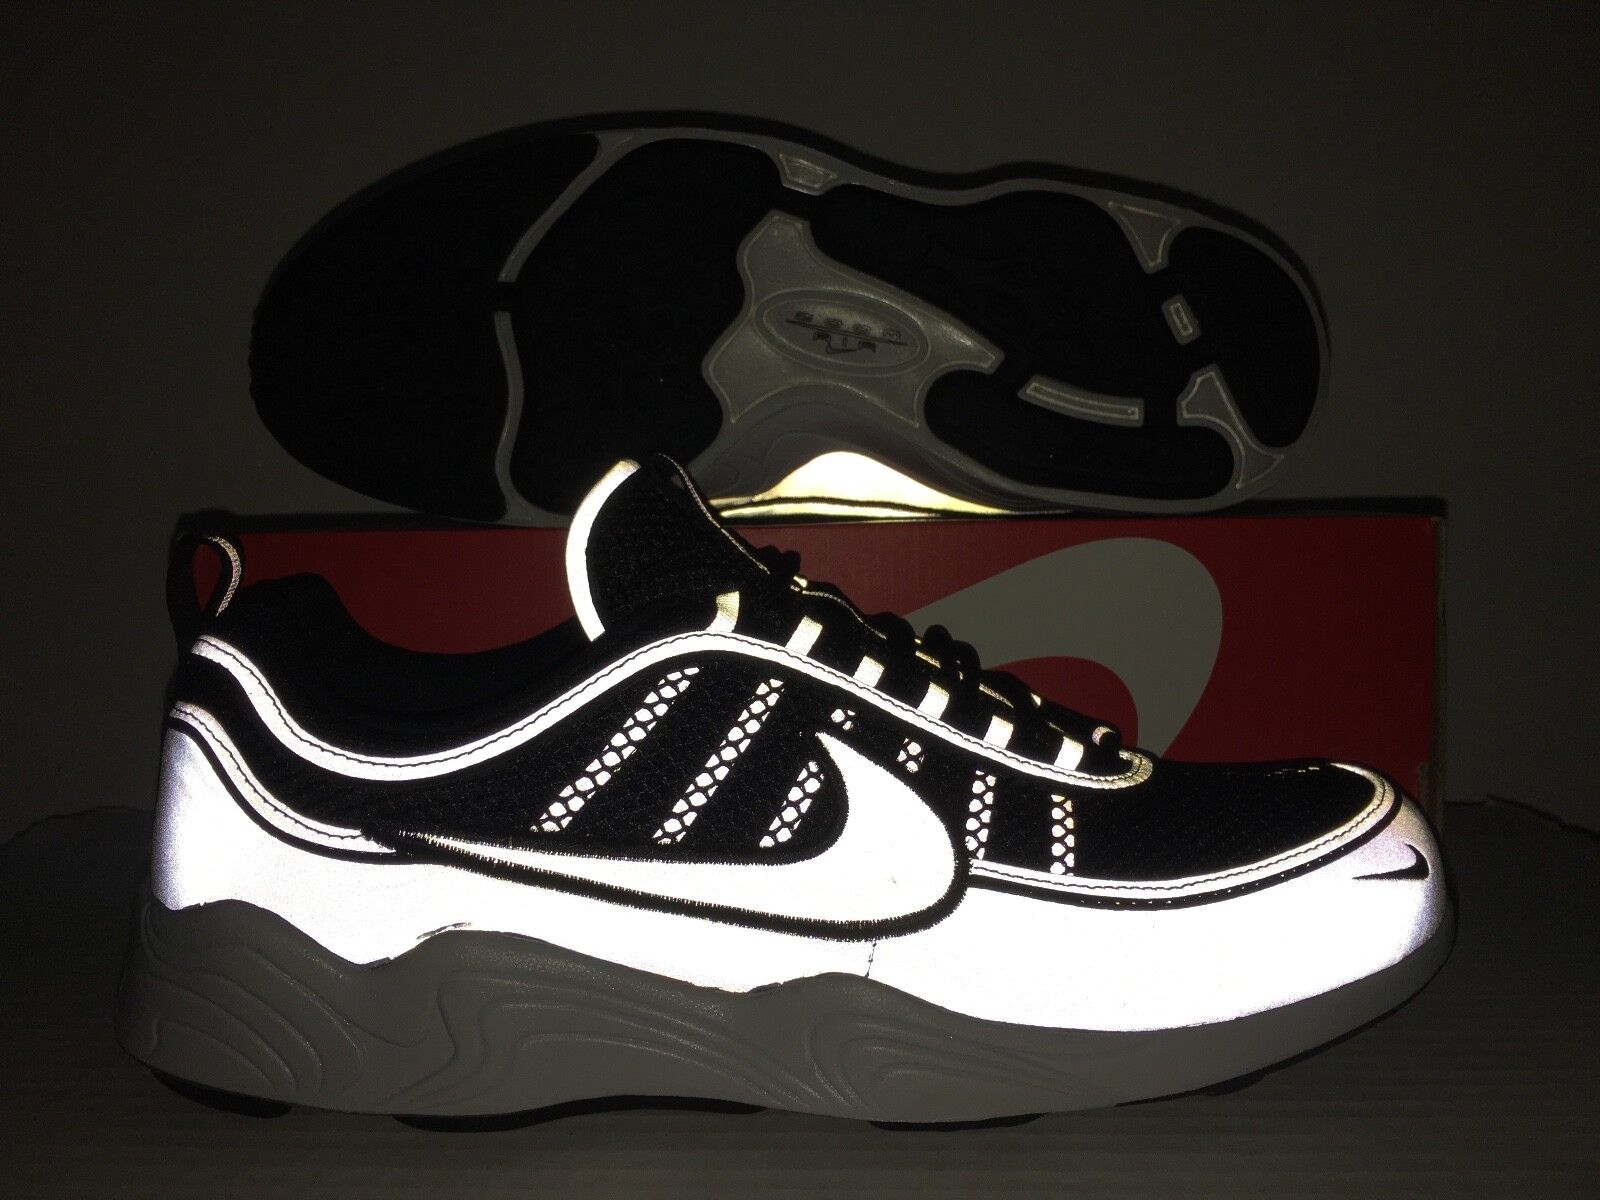 New shoes for men and women, limited time discount Nike Air Zoom Spiridon '16 Running Shoes Black Reflective Silver Price reduction